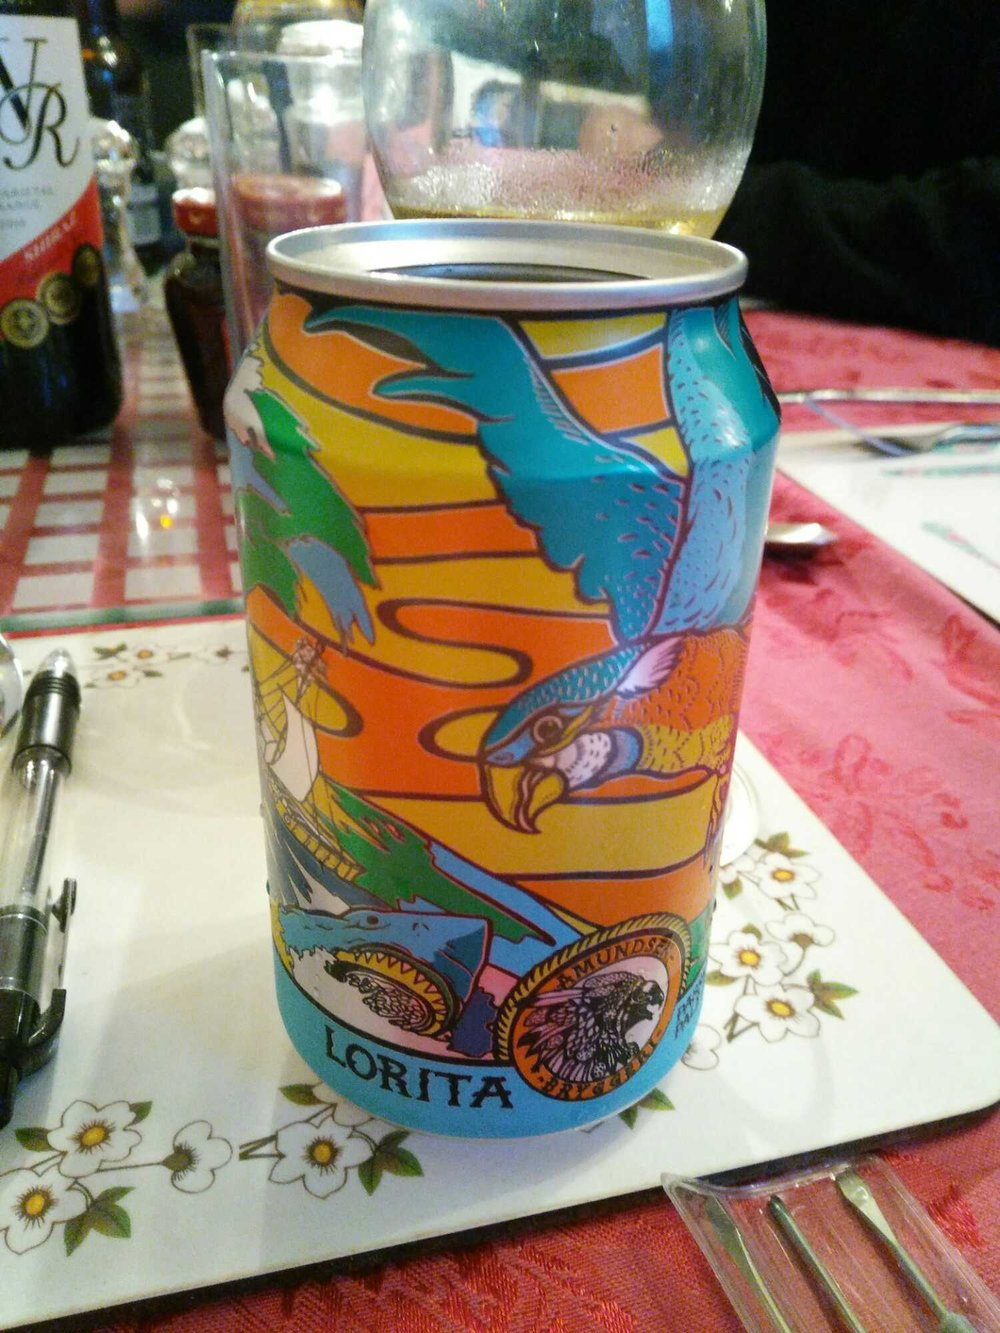 Lorita Passionfruit Pale Ale - Pale Ale 4.7 % // Amundsen Bryggeri - This was another one from my Christmas beer order (though not part of the theme, I just liked the can) and my first time trying anything from Norway's Amundsen.I had heard good things about Amundsen and their colourful cans have caught my eye on a number of occasions. This is also one of the few 'topless' cans I've had (I seem to be late to the party there).As expected from a passionfruit pale, this is massively fruity, with strong tropical flavours. Another really easy drinking beer, I'll definitely be trying more of Amundsen's range in the future.